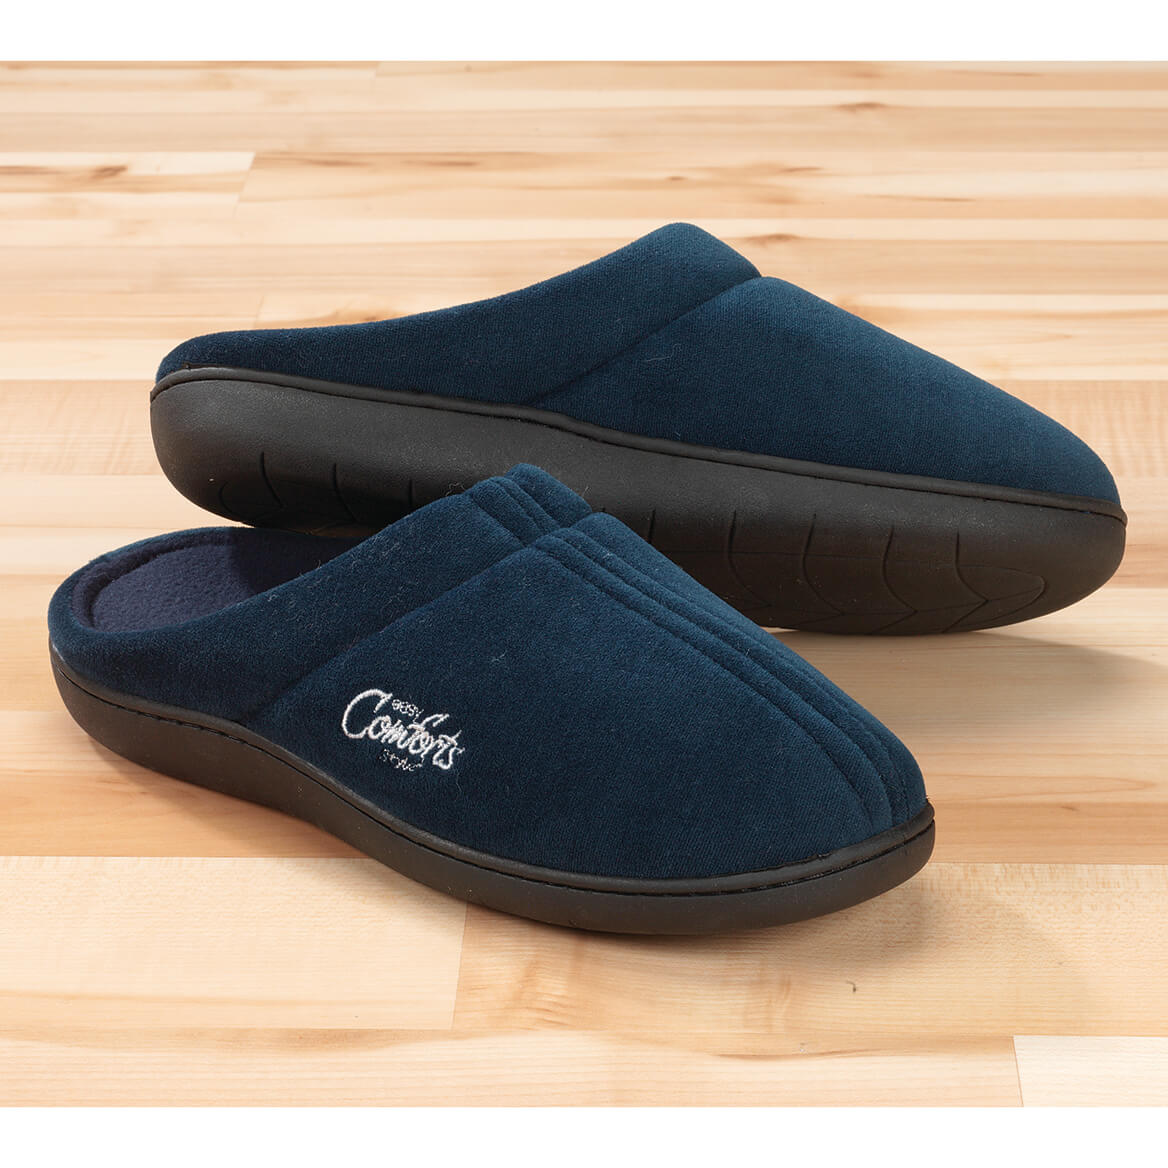 Easy Comforts Style™ Memory Foam Slippers-343708